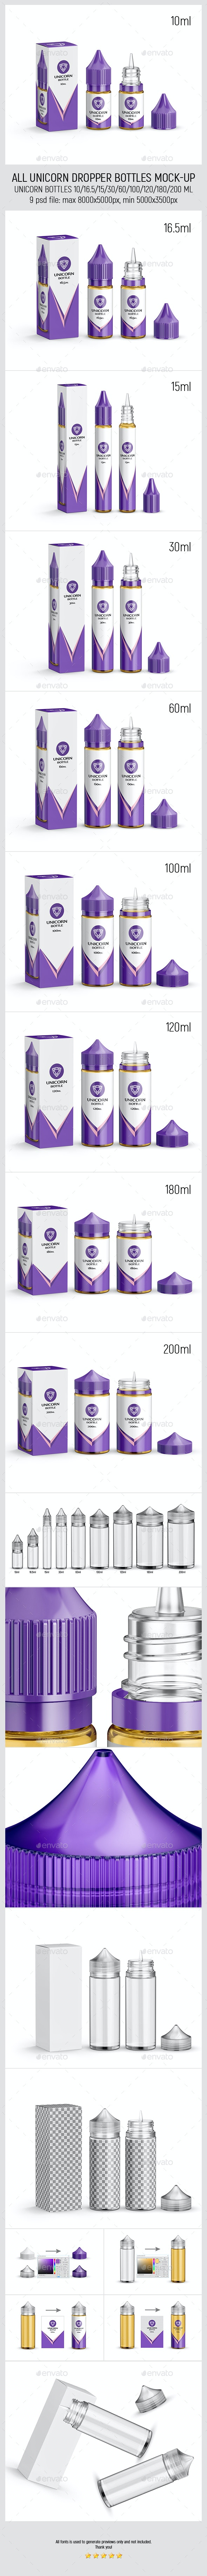 All Unicorn Dropper Bottles Mock-up - Miscellaneous Packaging